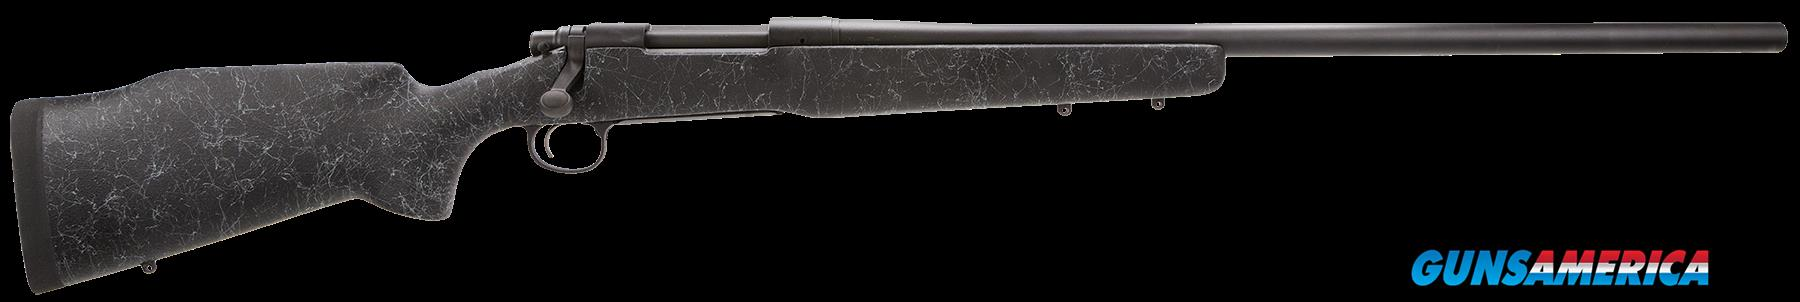 "Remington Firearms 84166 700 Long Range Bolt 30-06 Springfield 26"" 4+1 Synthetic Black/Gray Stk  Guns > Rifles > R Misc Rifles"